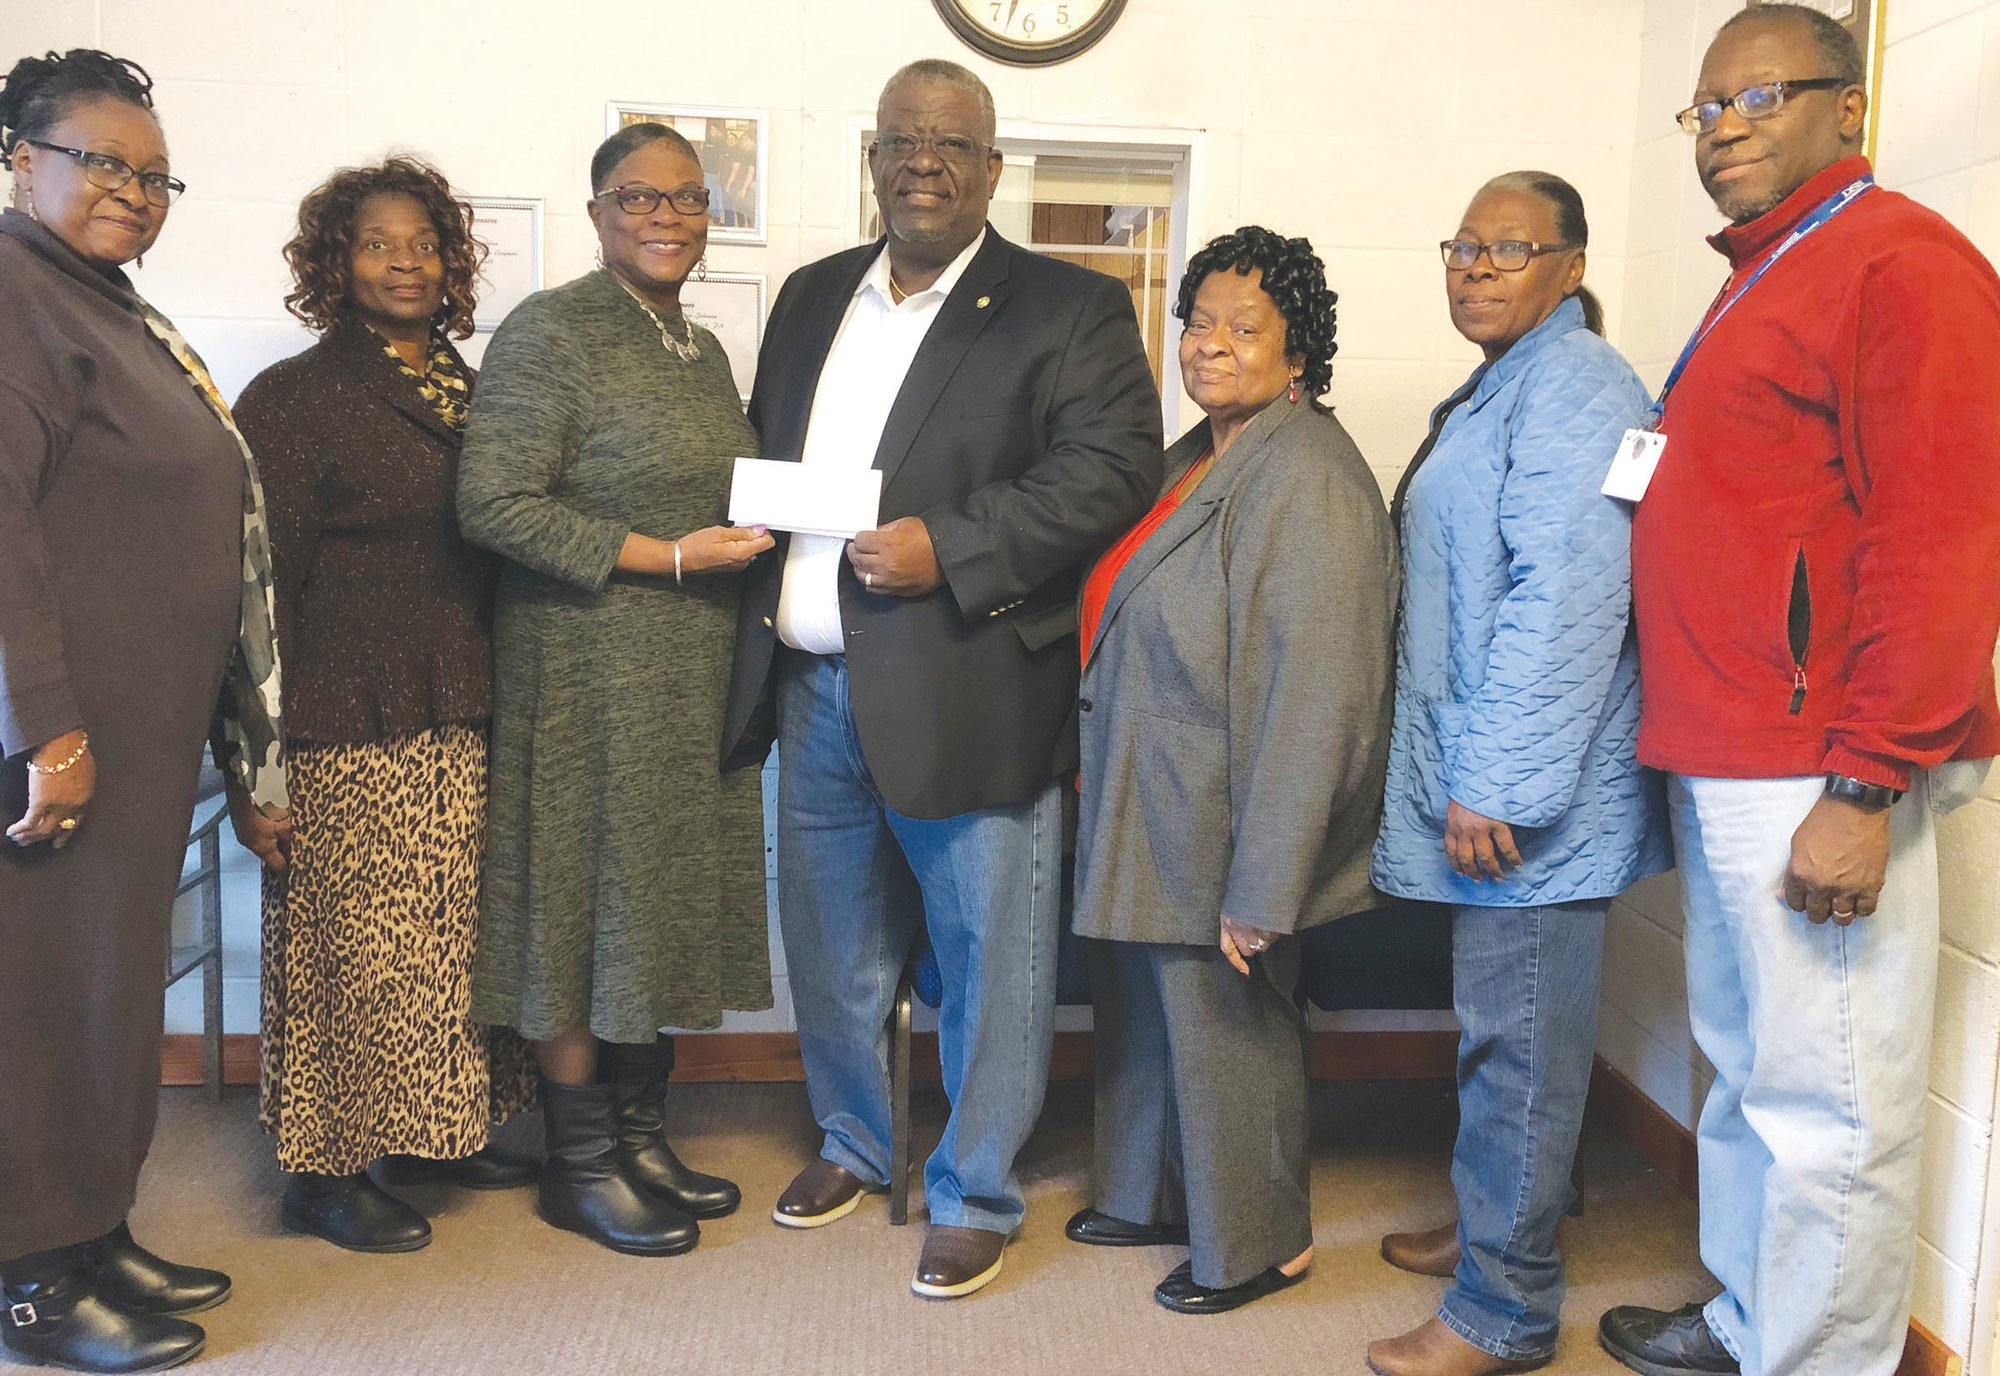 PHOTO PROVIDED  Sen. Kevin L. Johnson, D-Manning, presented the Clarendon County Community Development Corp. a check for $100,000 in mid-December that will assist the agency in helping needy families in Clarendon County. Shown with Johnson, center, are Pamela Clavon-Brunson, executive director of the CCCDC; Emma Hilton, CCCDC board member; Paulette King, programs director; Johnson; Loretta W. King, CCCDC consultant; Martha Frierson, CCCDC board member; and the Rev. David Woods, CCCDC board chairman.